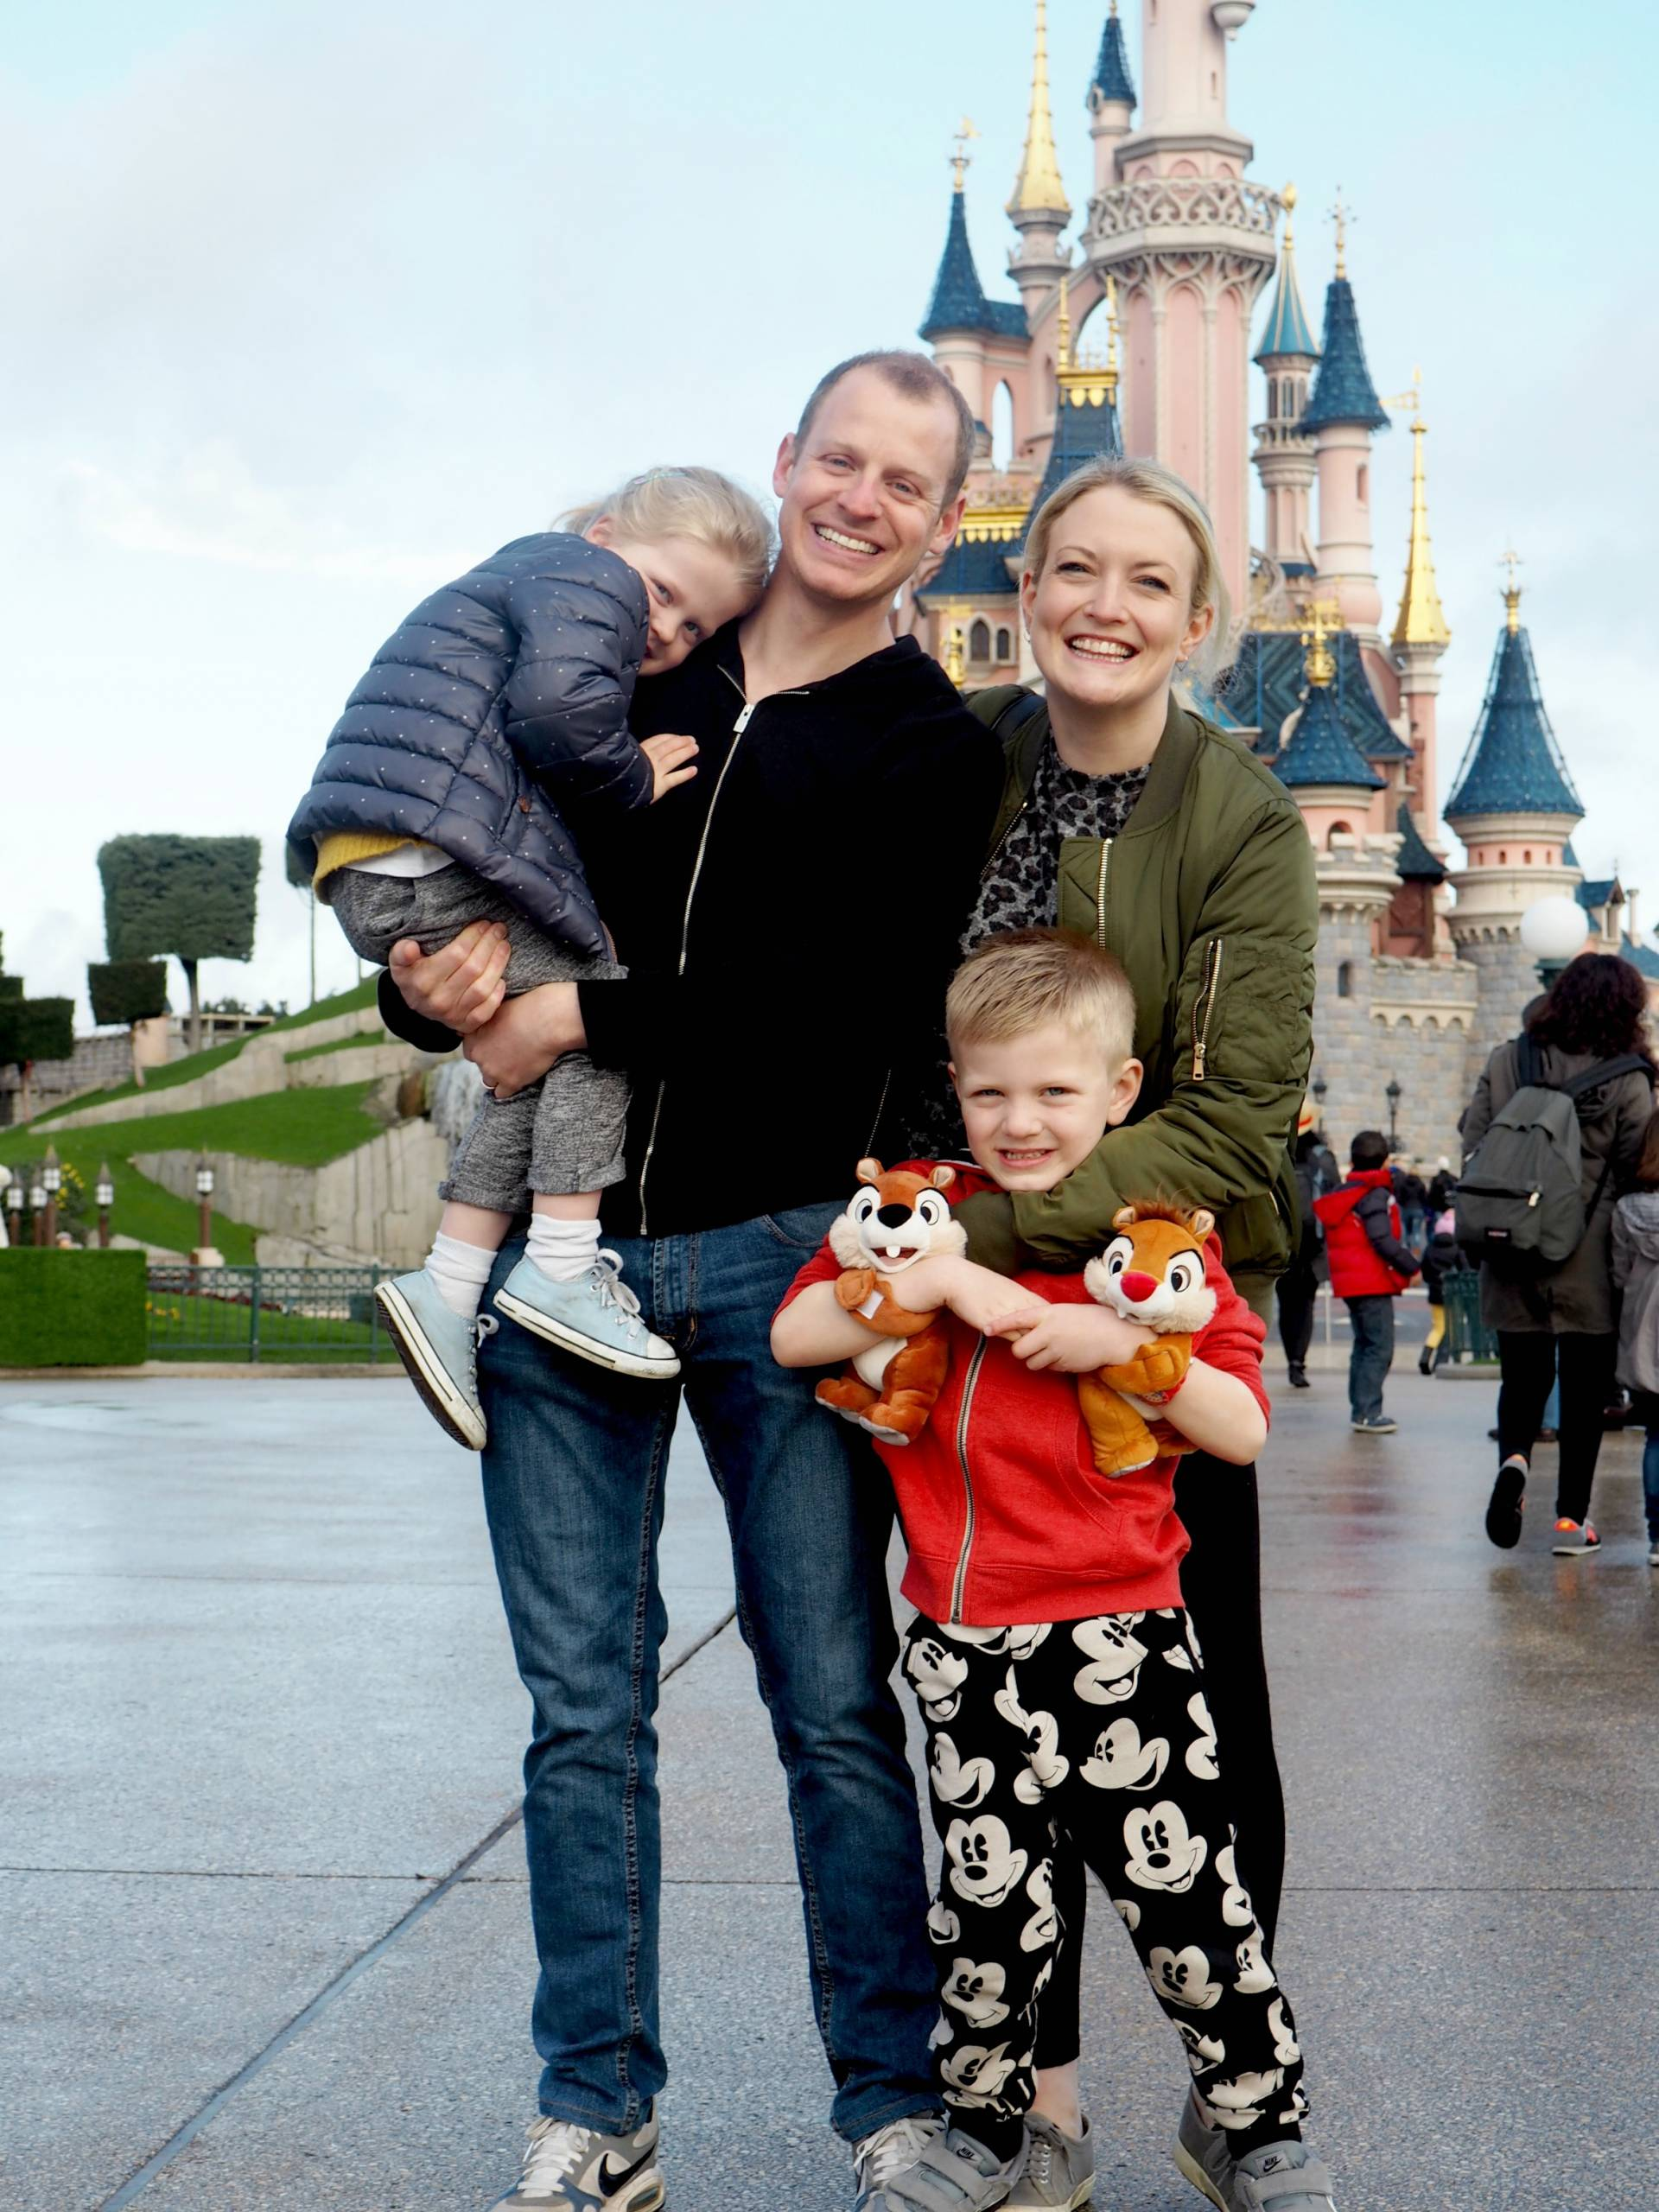 Our Trip to Disneyland Paris Easter 2016 – Part 1